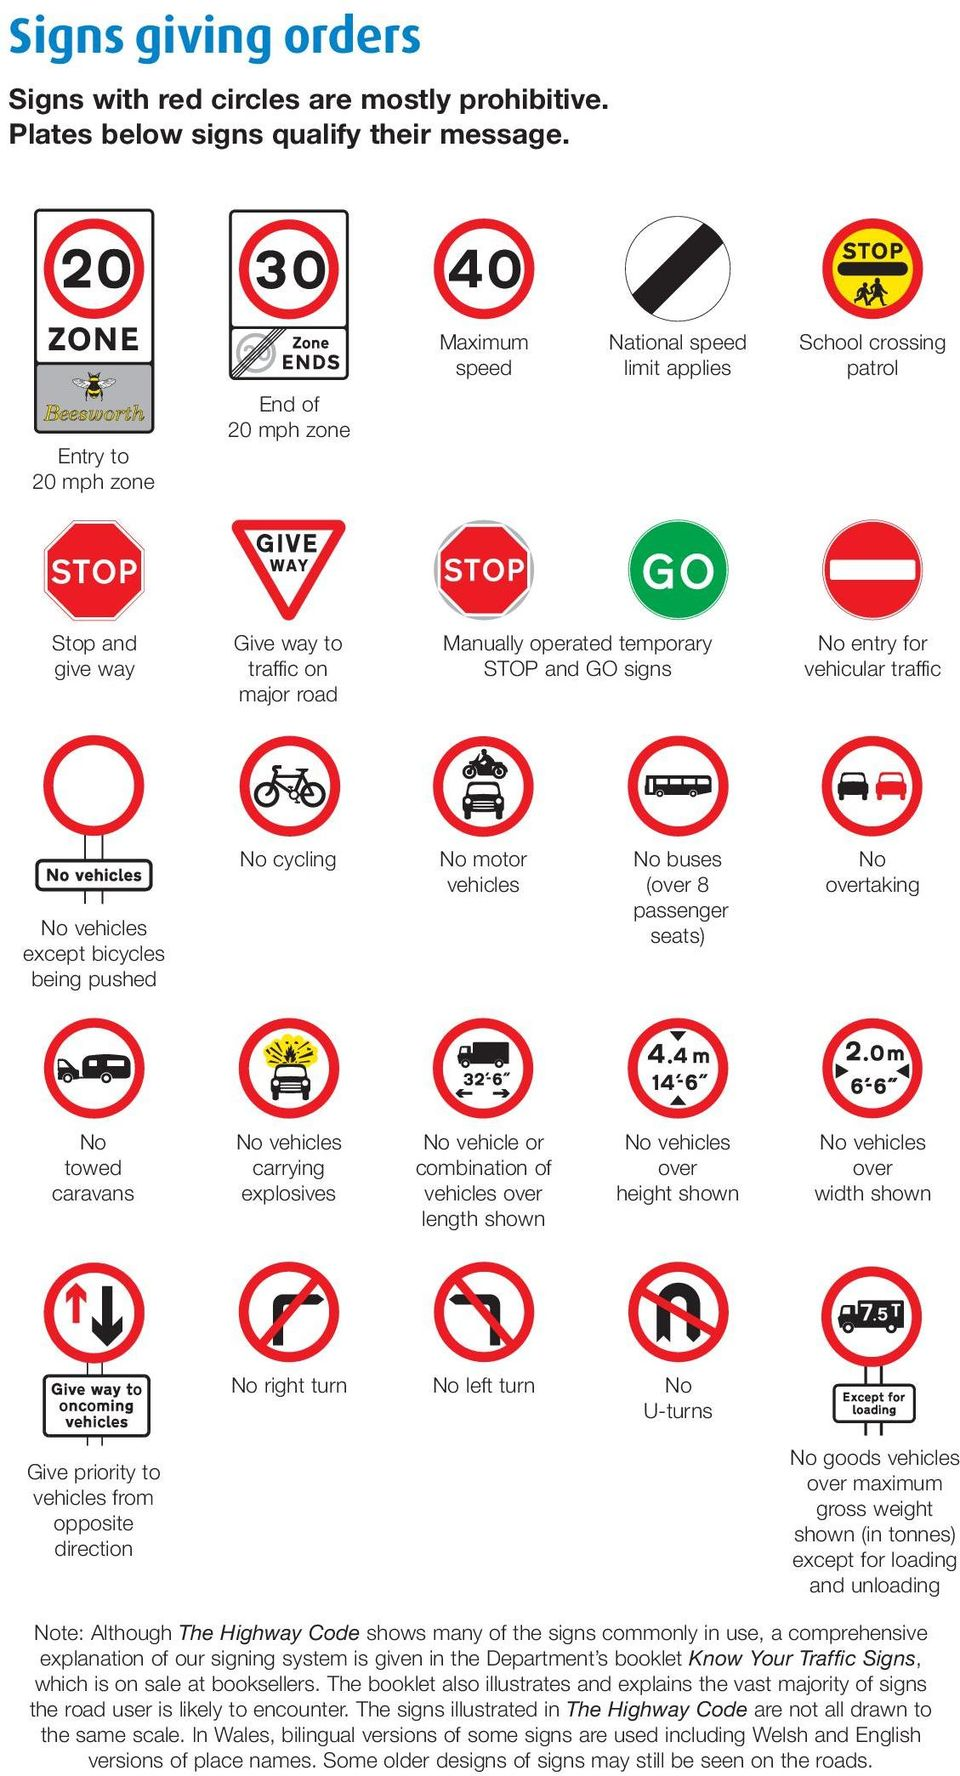 signs vehicular traffic major road No vehicles except bicycles being pushed No cycling No motor vehicles No buses (over 8 passenger seats) No overtaking No No vehicles No vehicle or No vehicles No